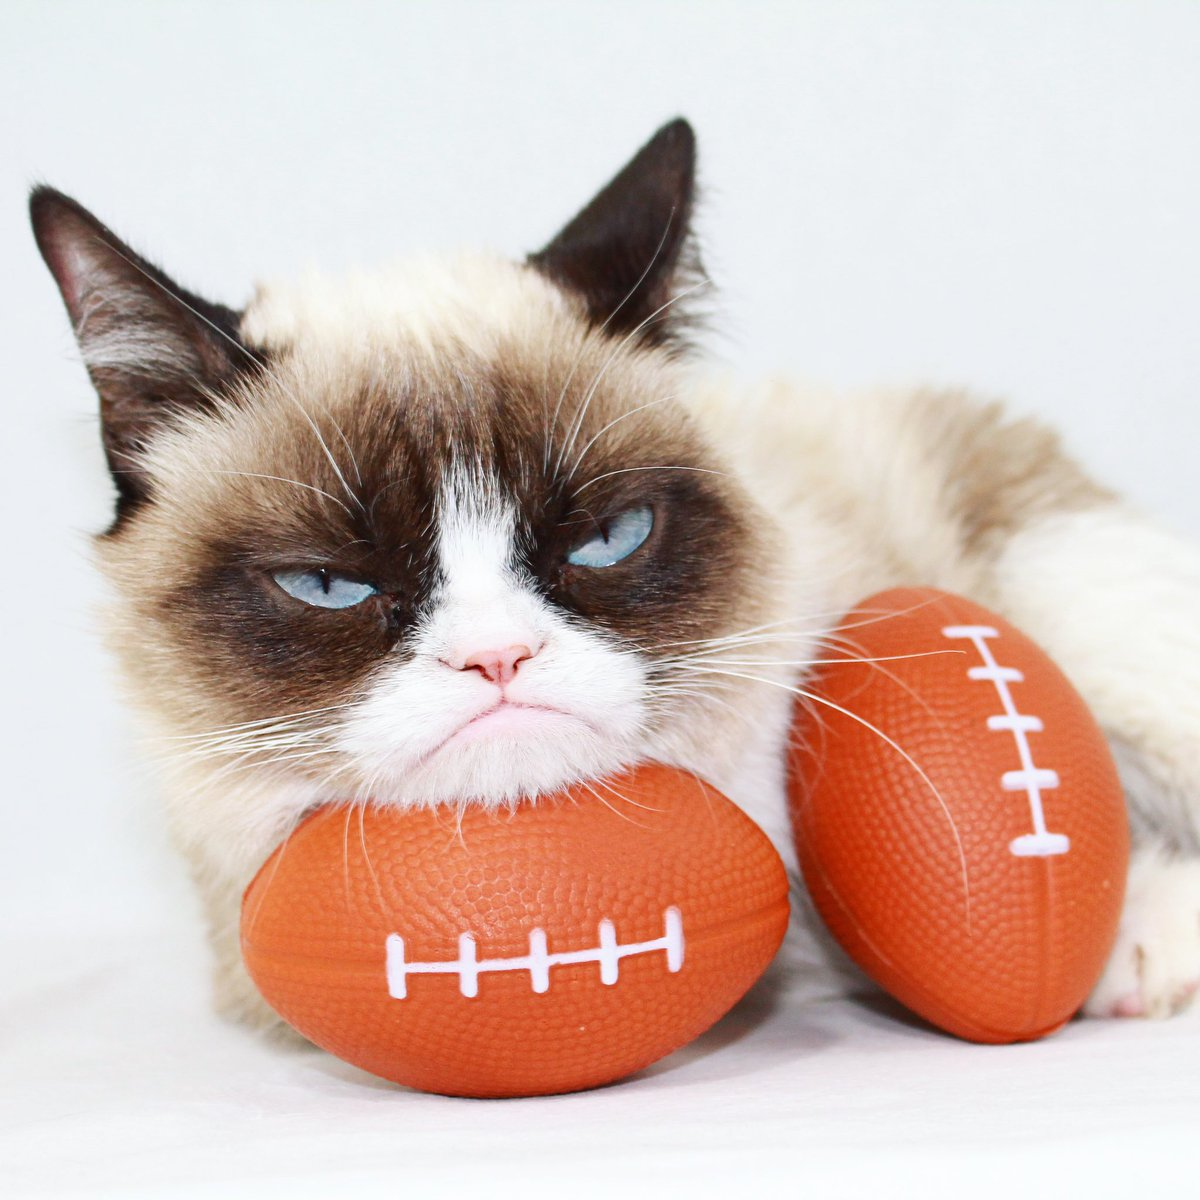 Image of: Book Grumpy Catverified Account realgrumpycat Walmart Grumpy Cat realgrumpycat Twitter